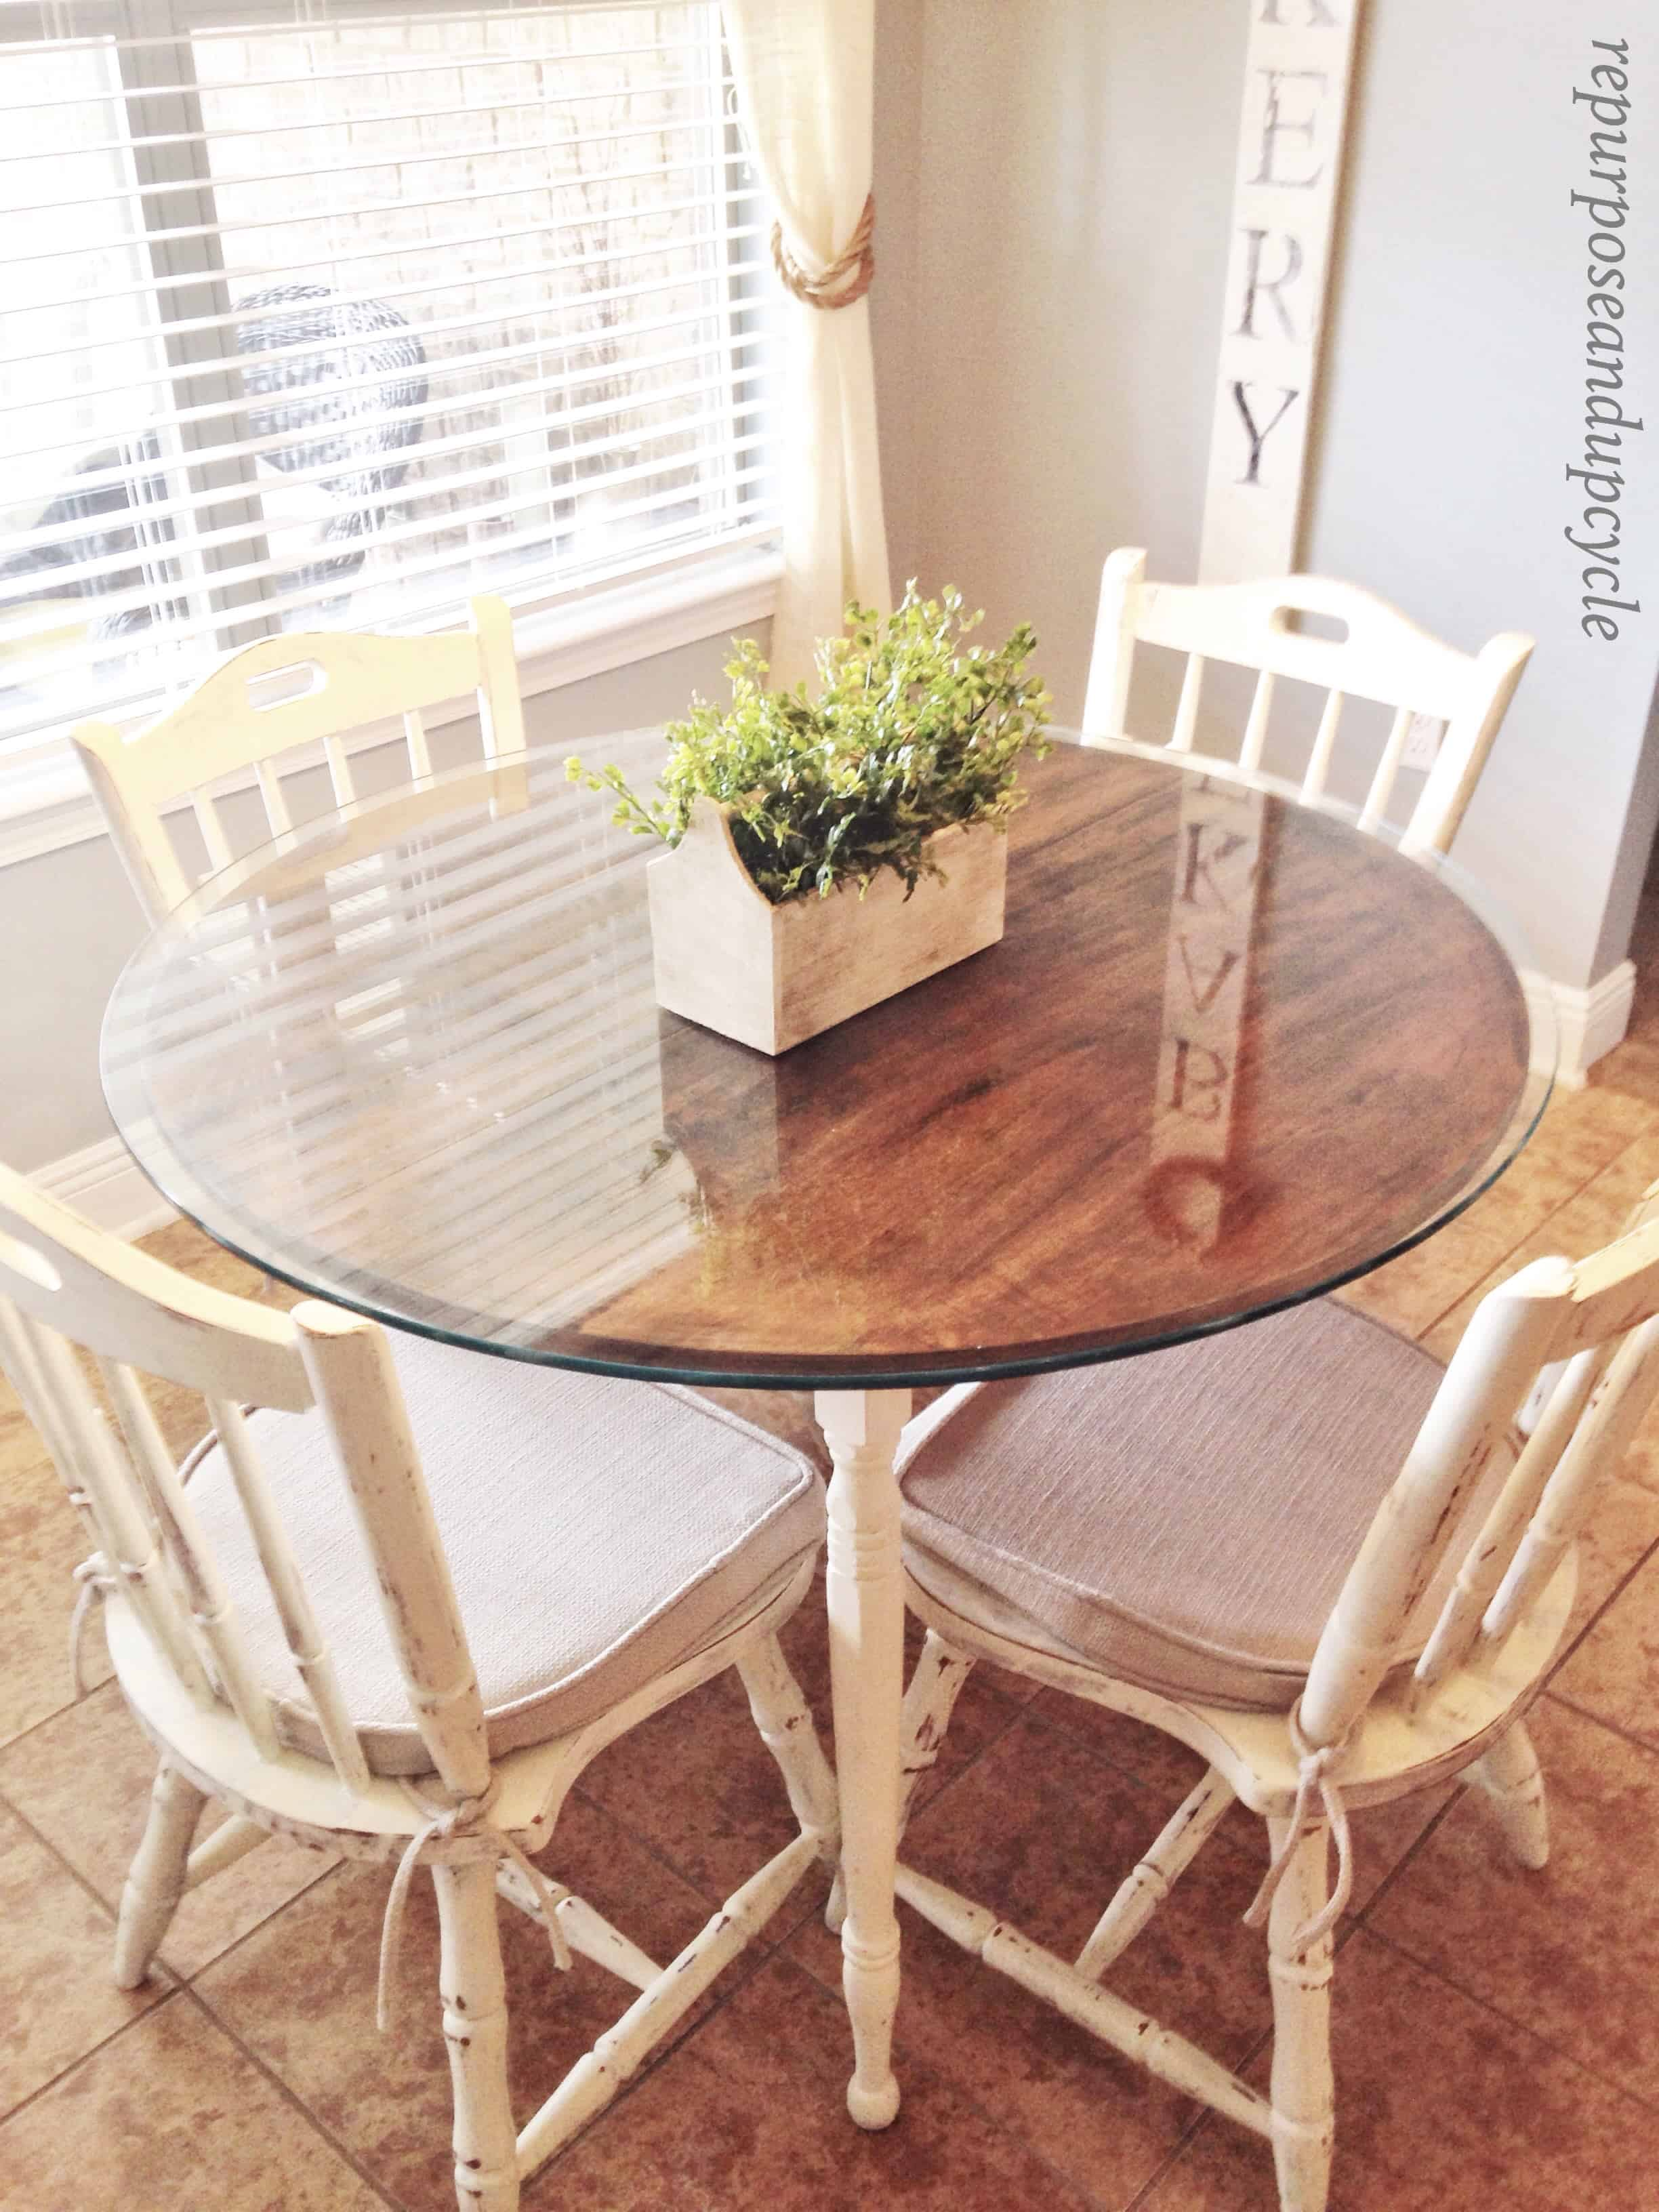 painted table and chairs hammock chair amazon chalk paint dining room makeover